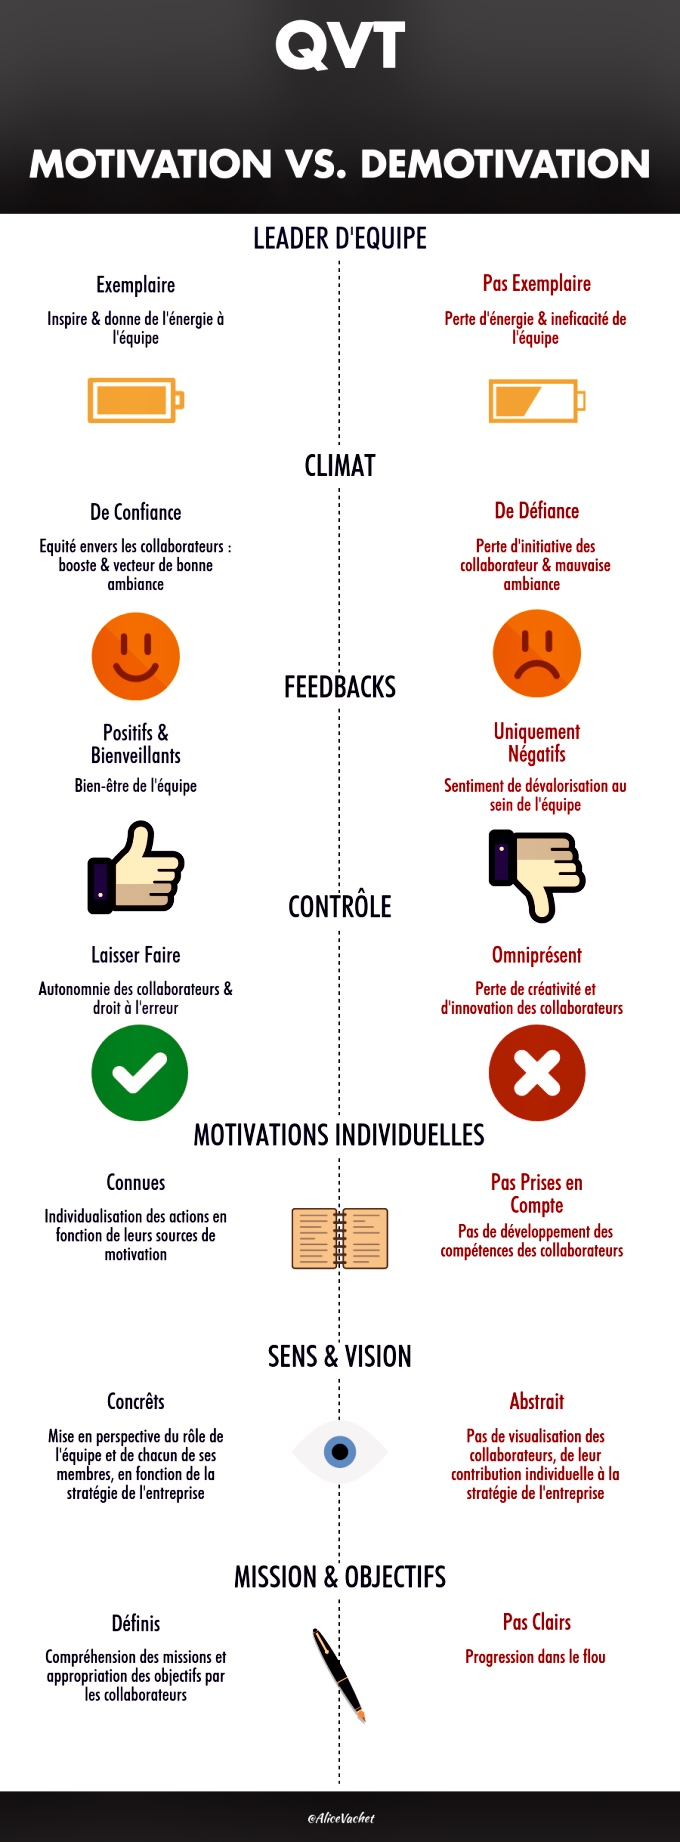 [Infographie] QVT : Motivation Vs. Démotivation ☝🏻